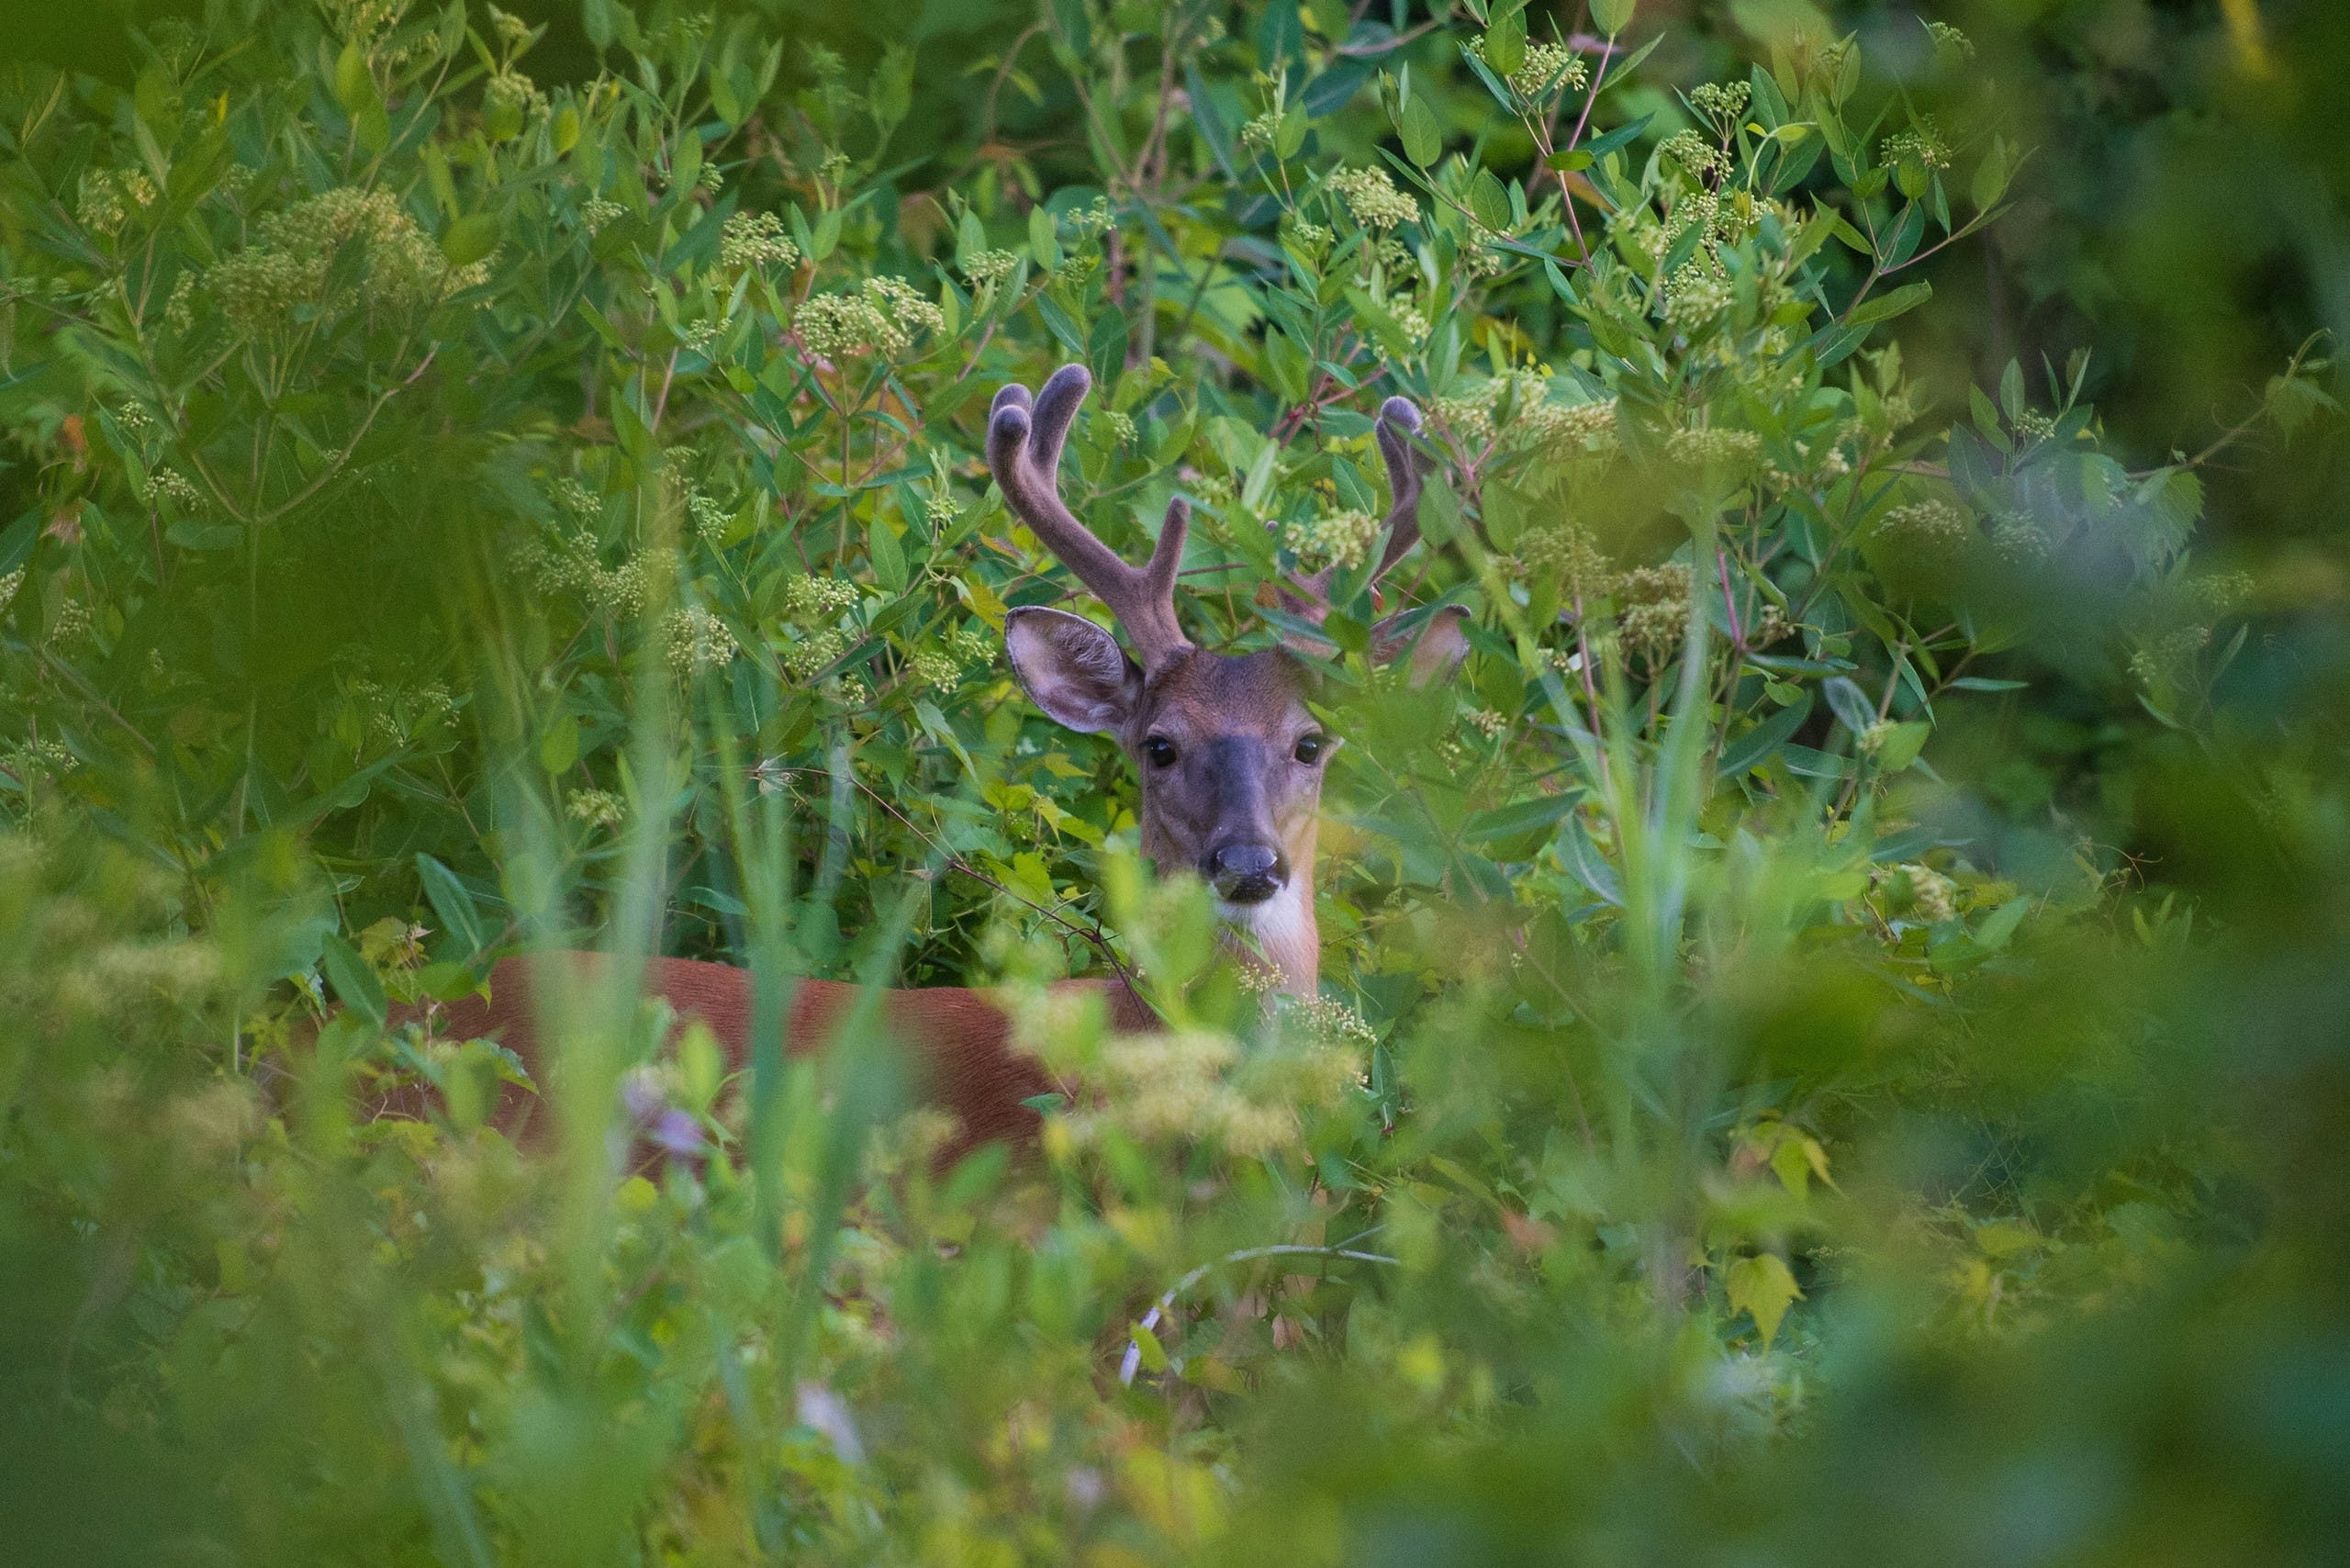 A deer is seen in Liberty State Park on June 24, 2021 in Jersey City, New Jersey. (AFP)